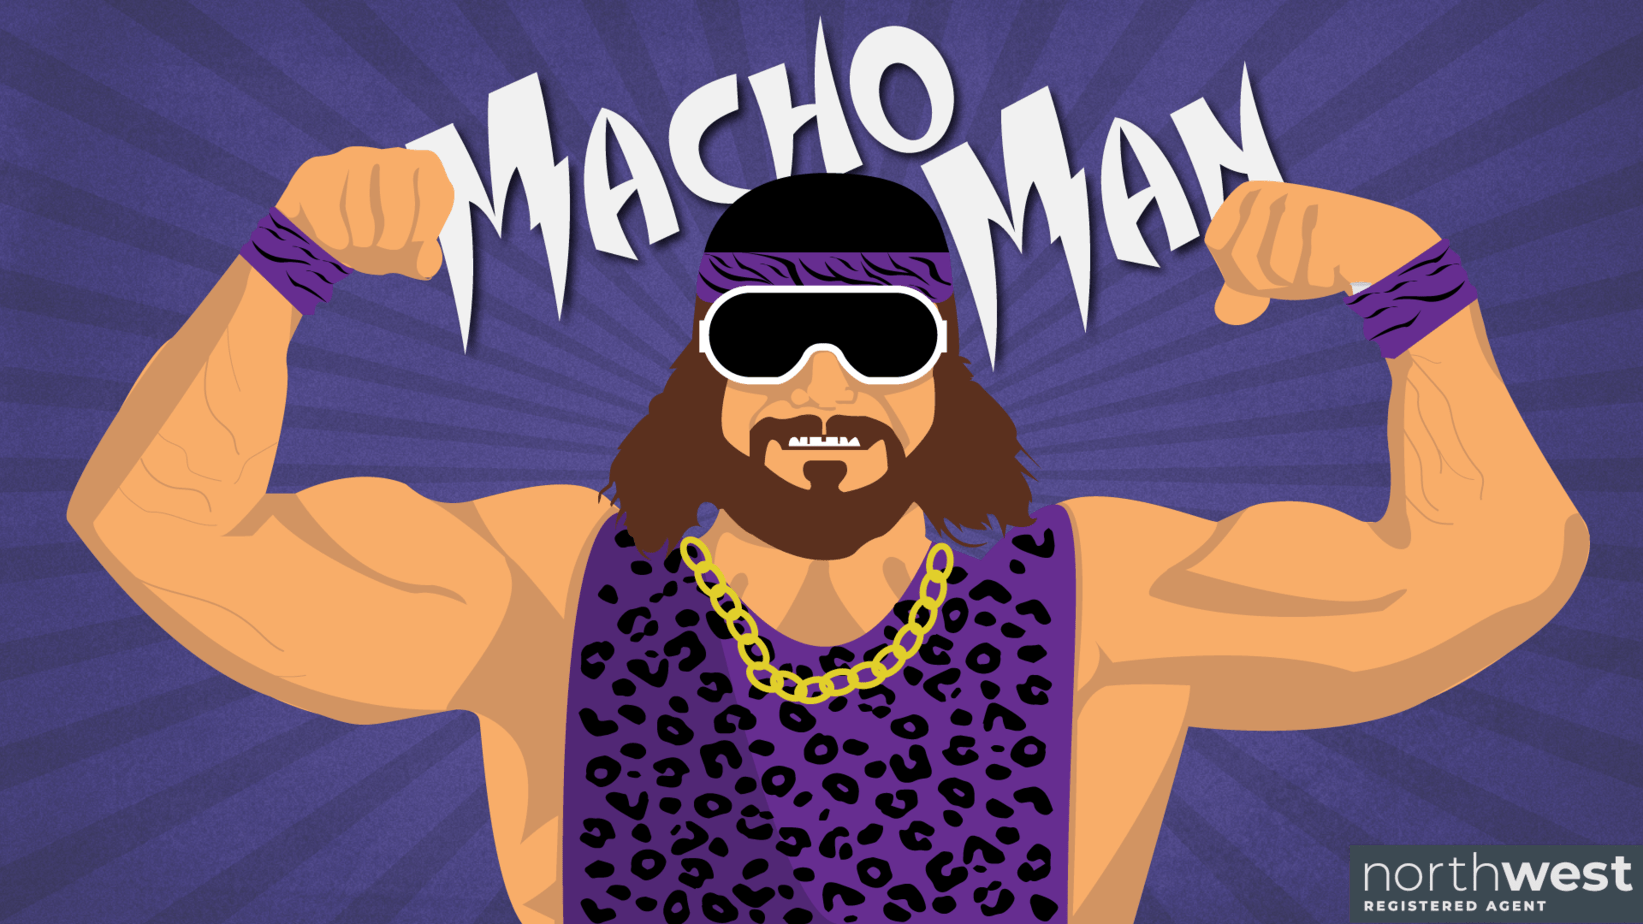 What You Can Learn About Branding From Macho Man Randy Savage